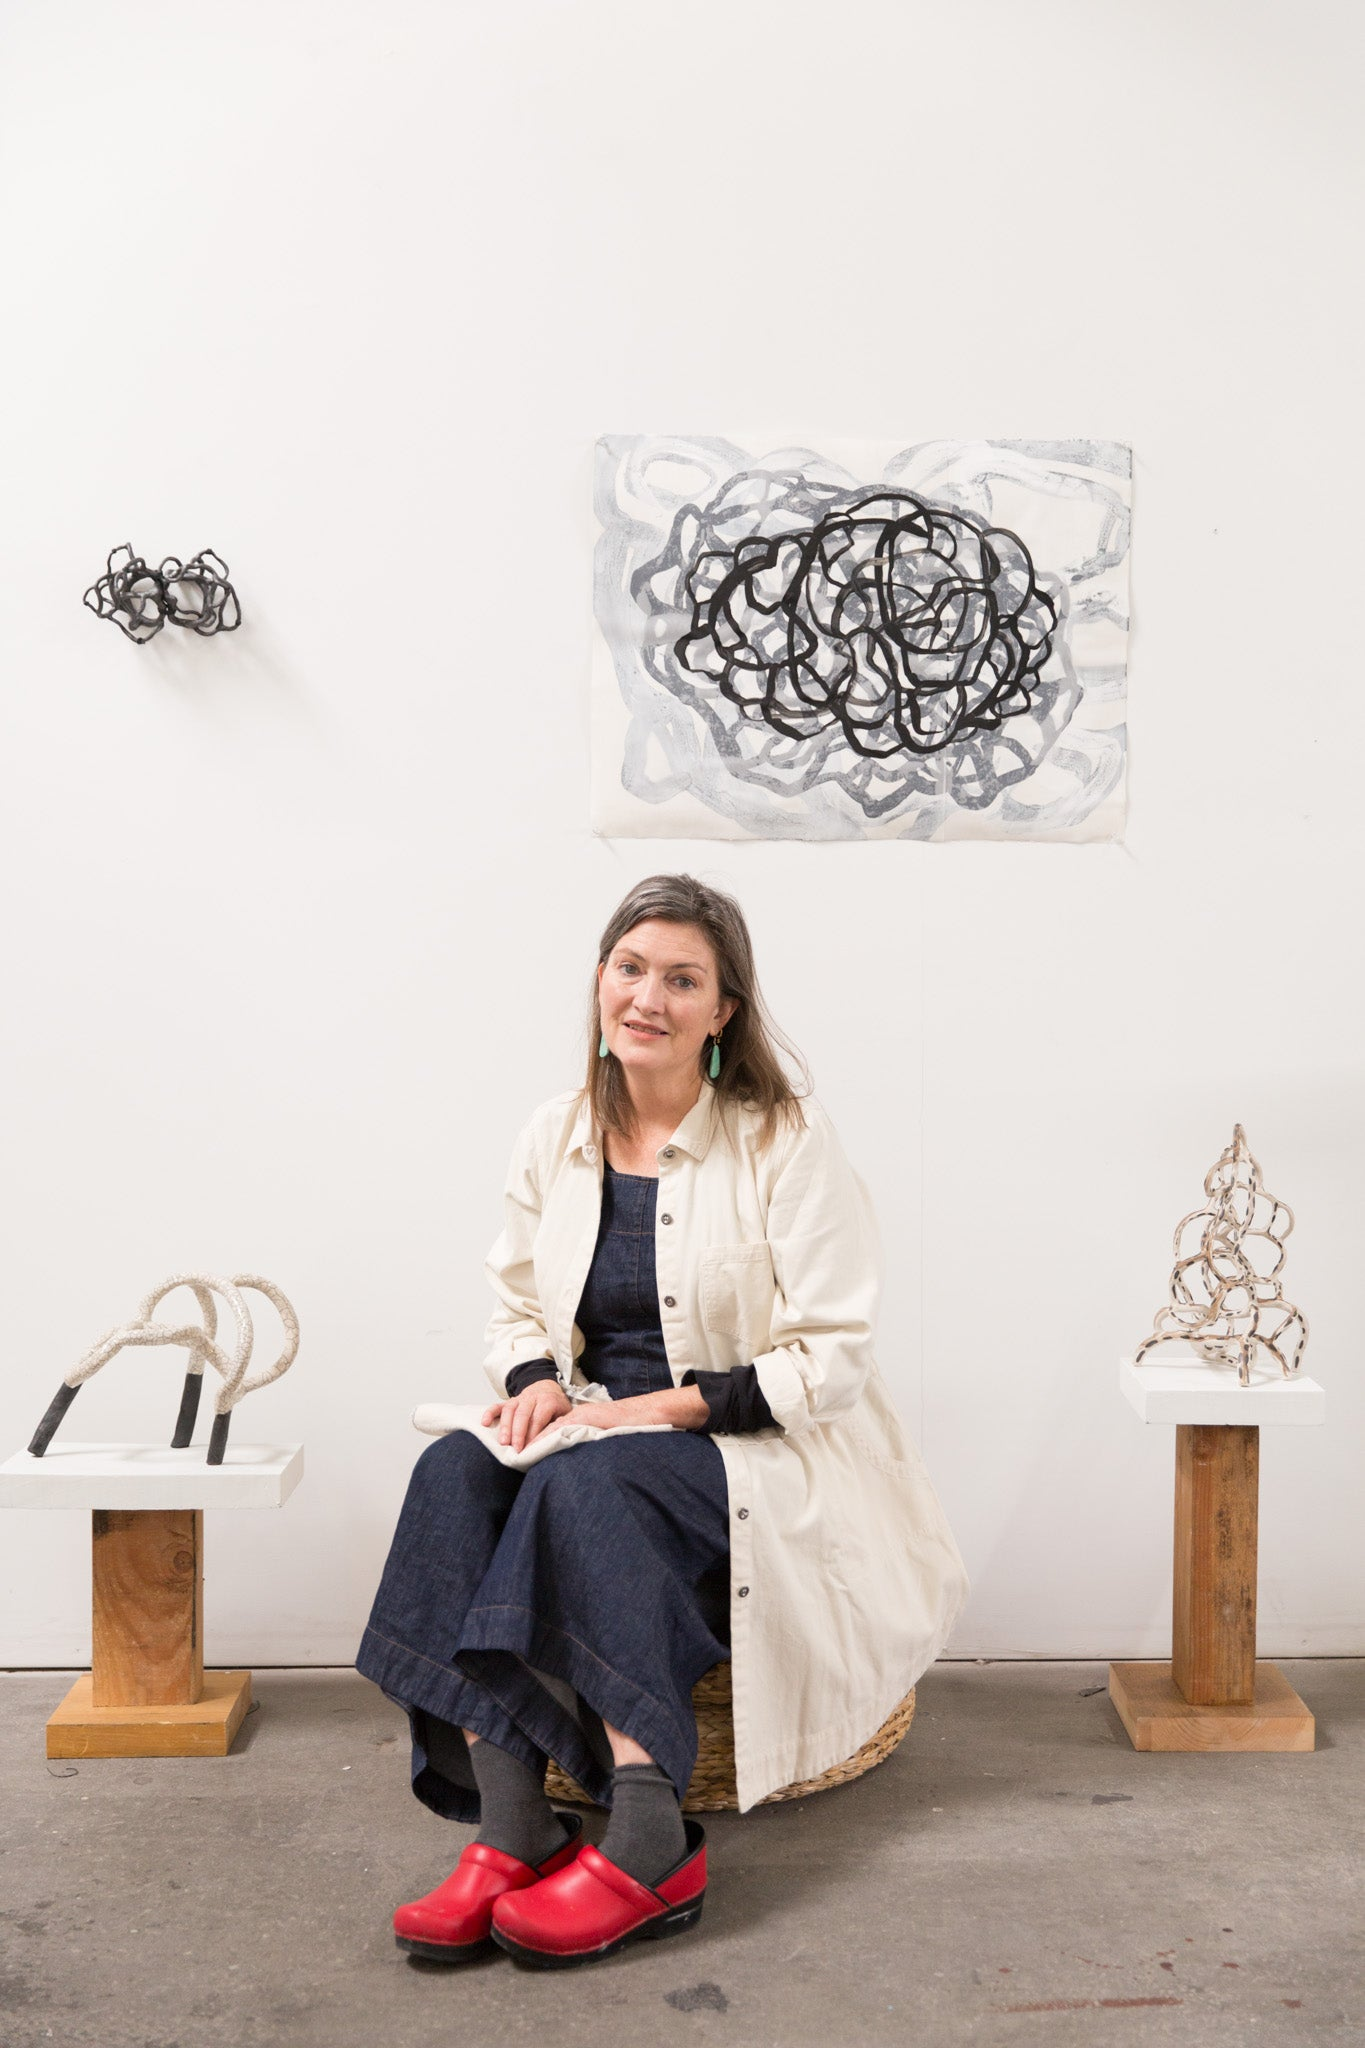 artist Laura Cooper seated in studio surrounded by her sculptures